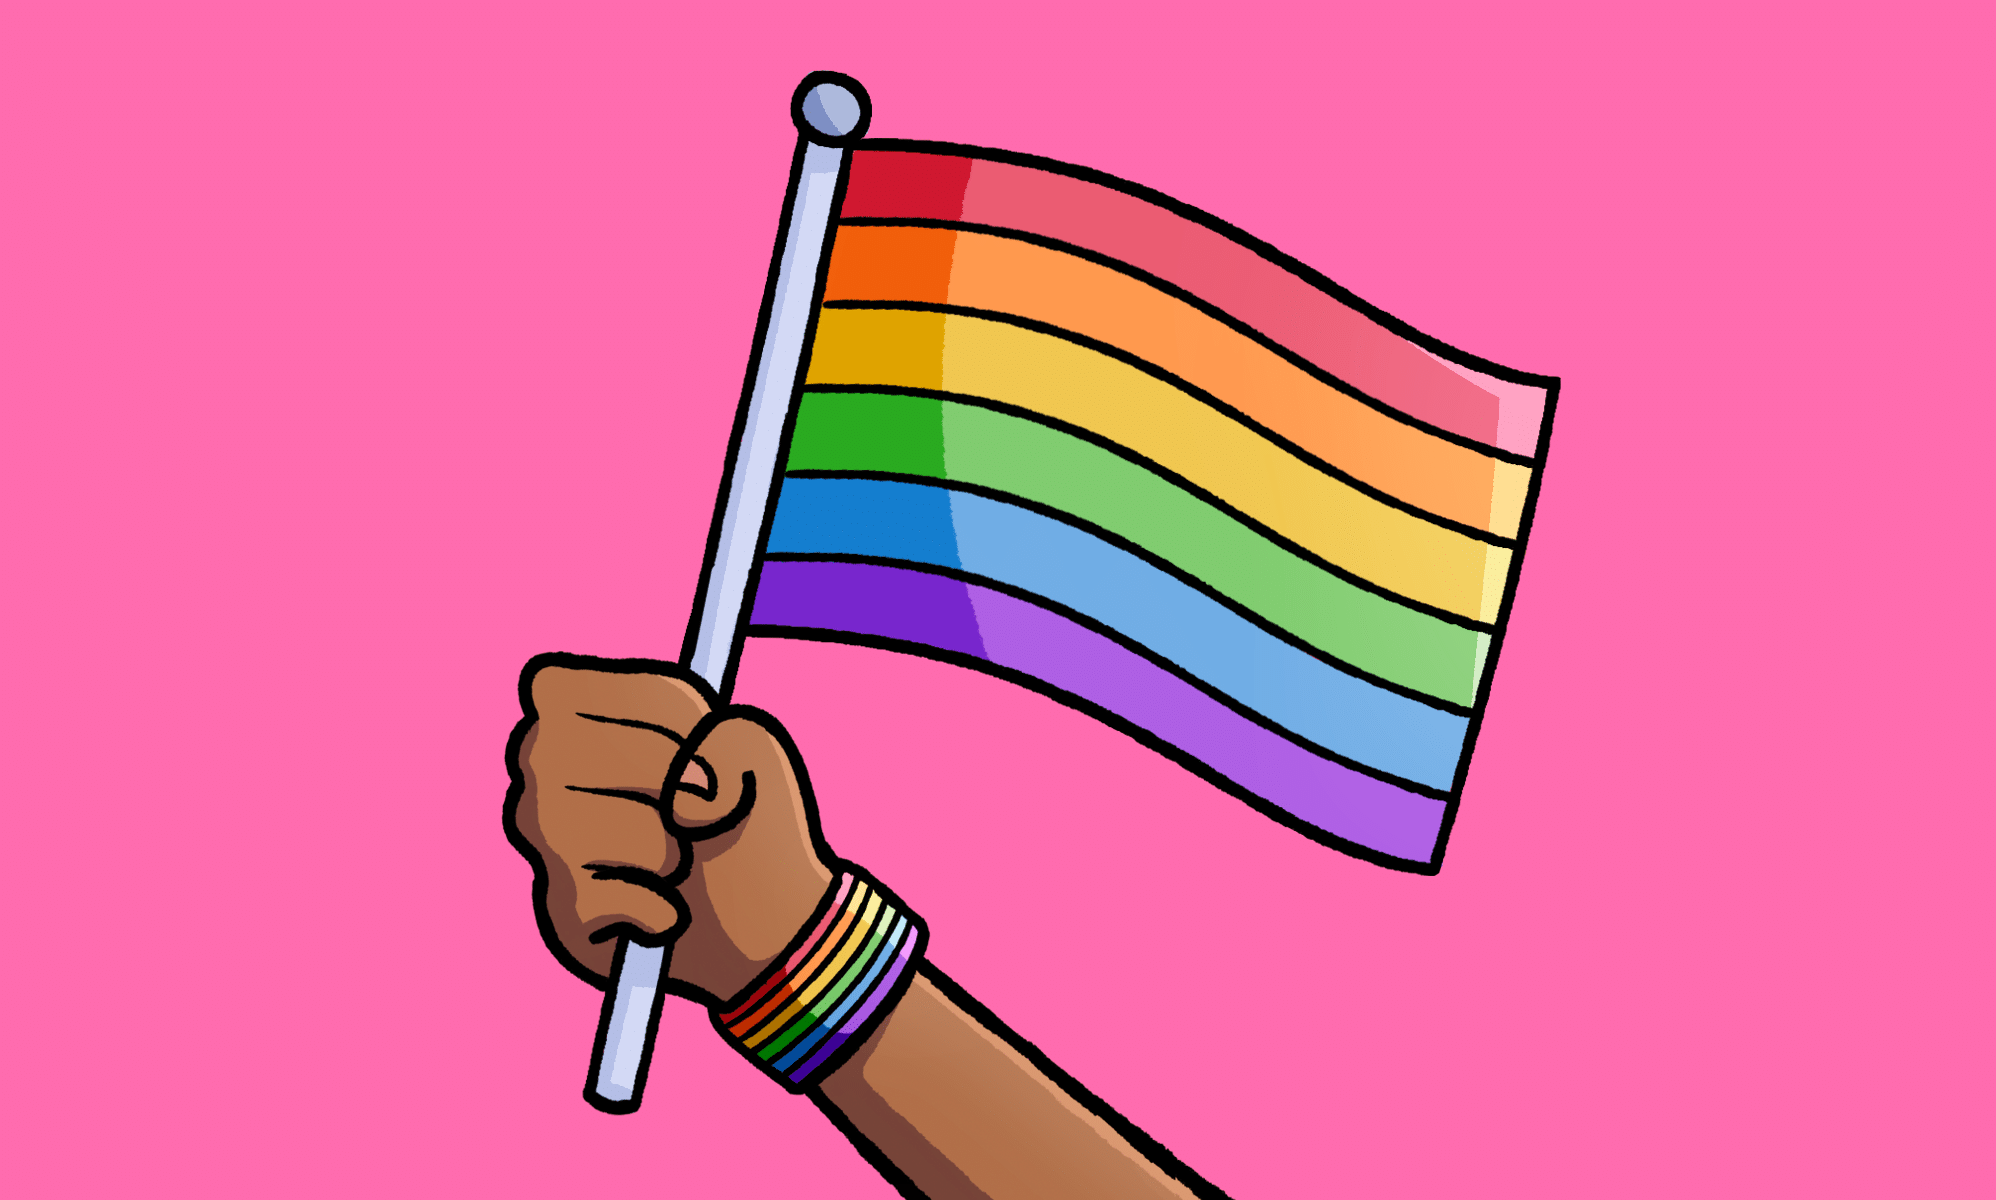 Love wins: The unsung heroes to thank for equality